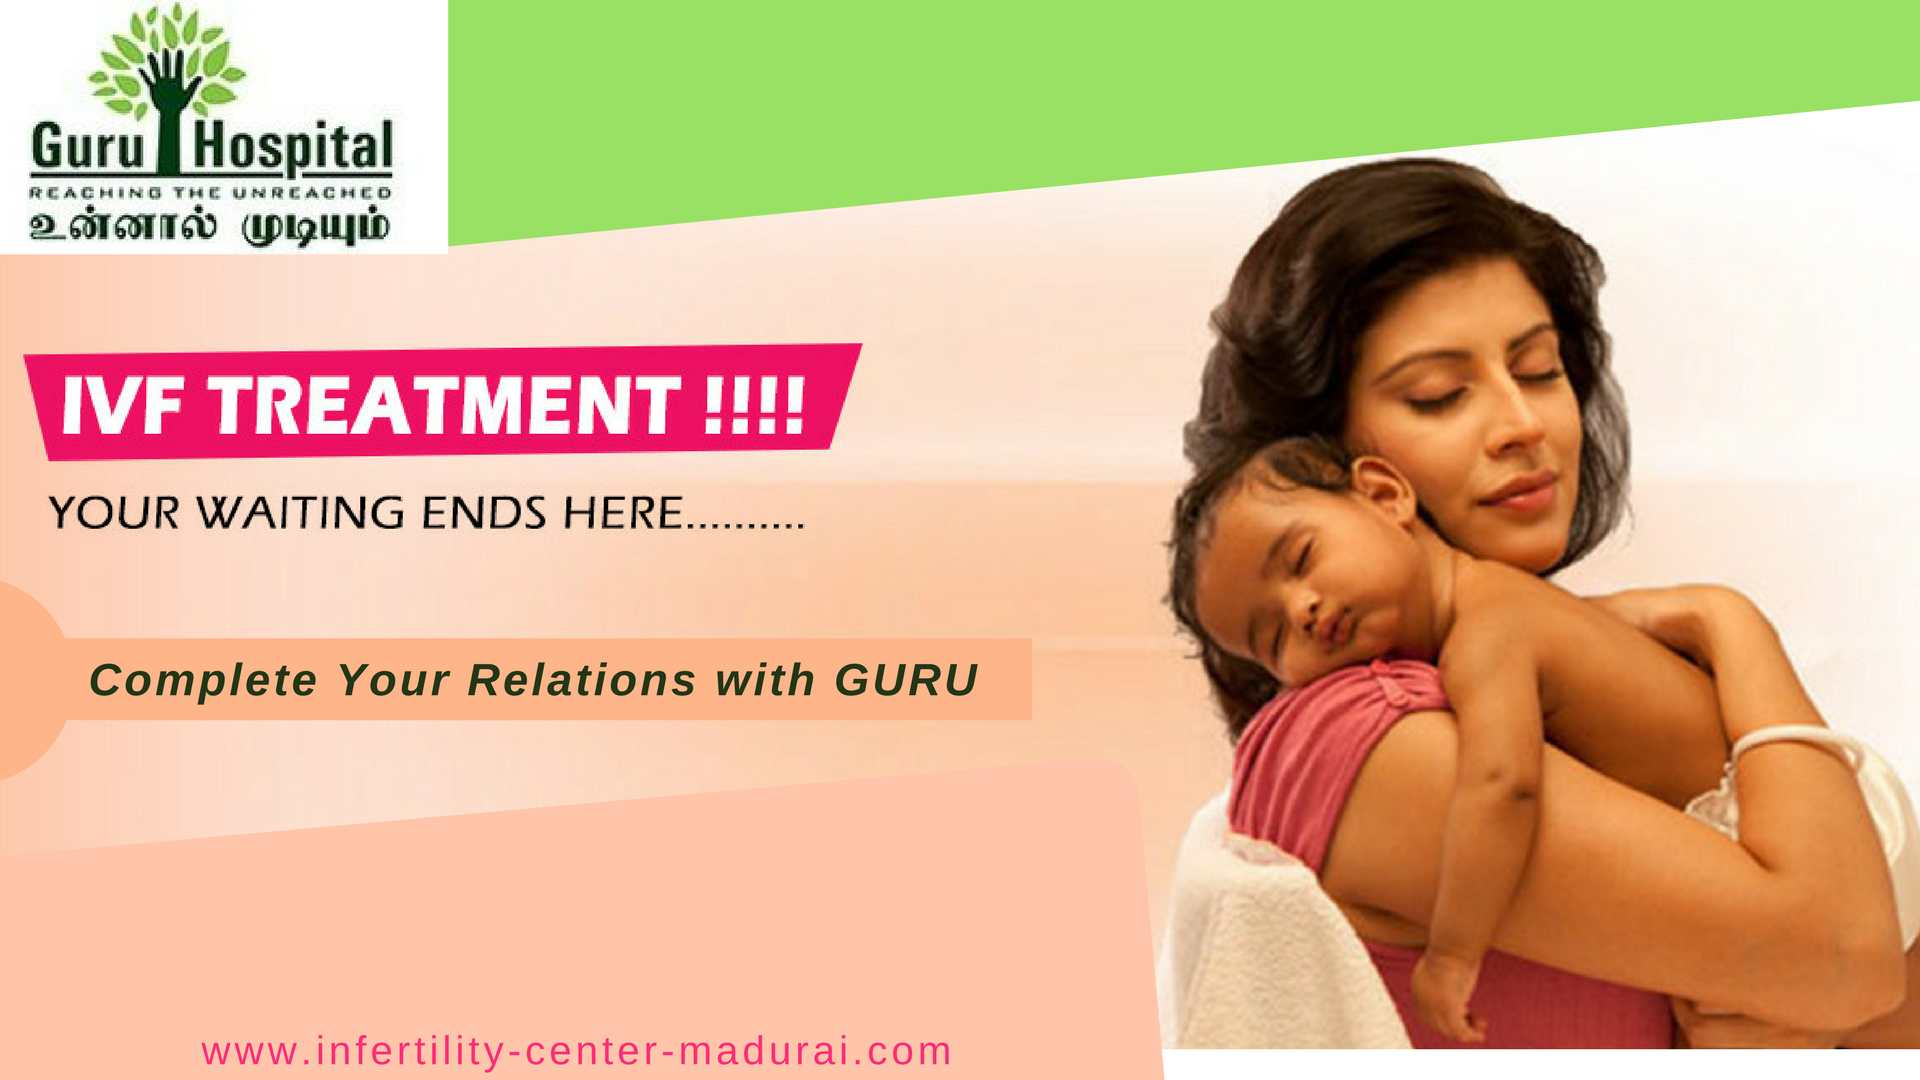 Women infertility treatments Tamil Nadu